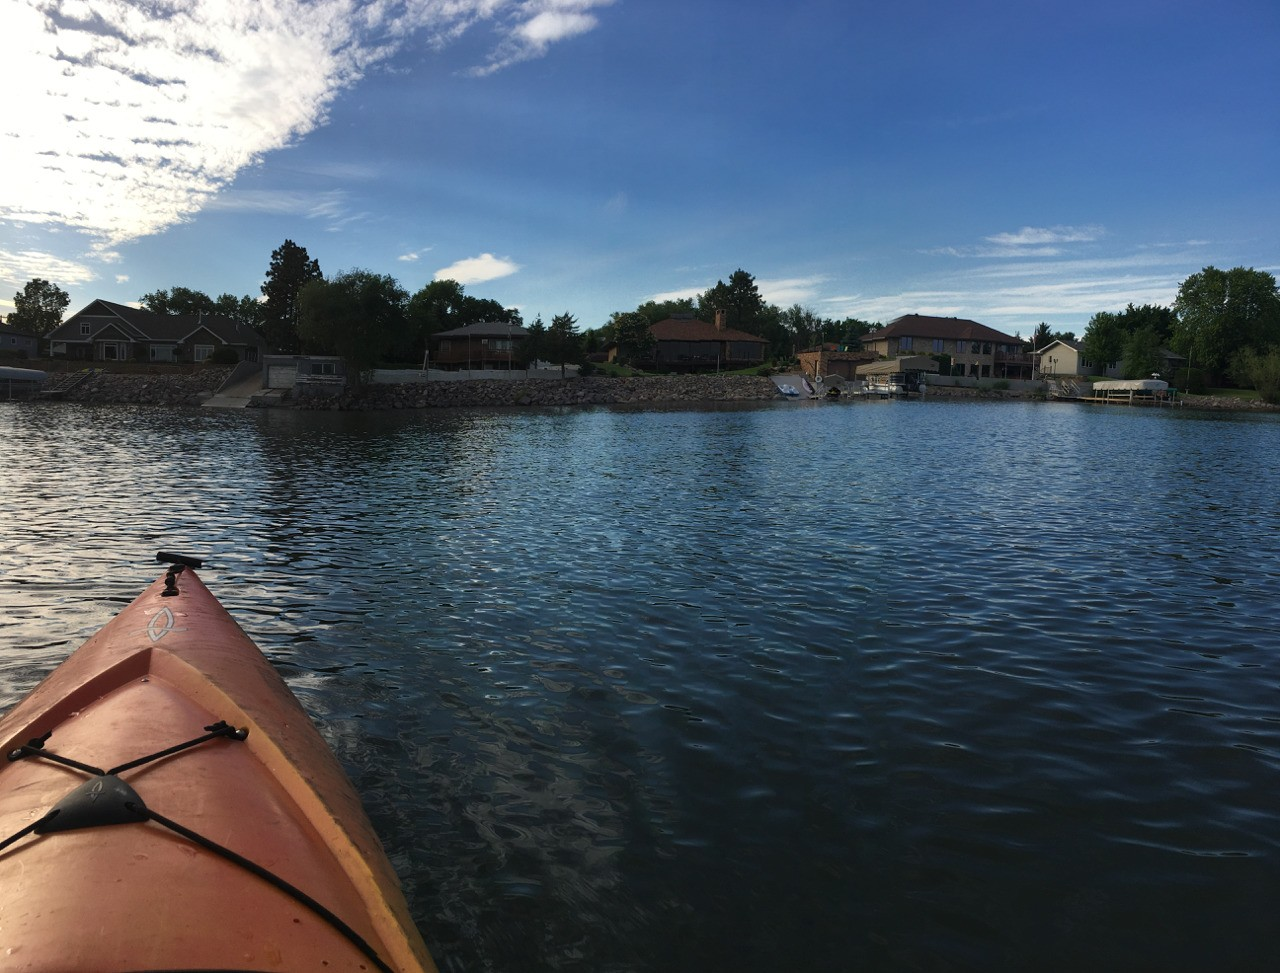 Kayaking on Lake Kampeska